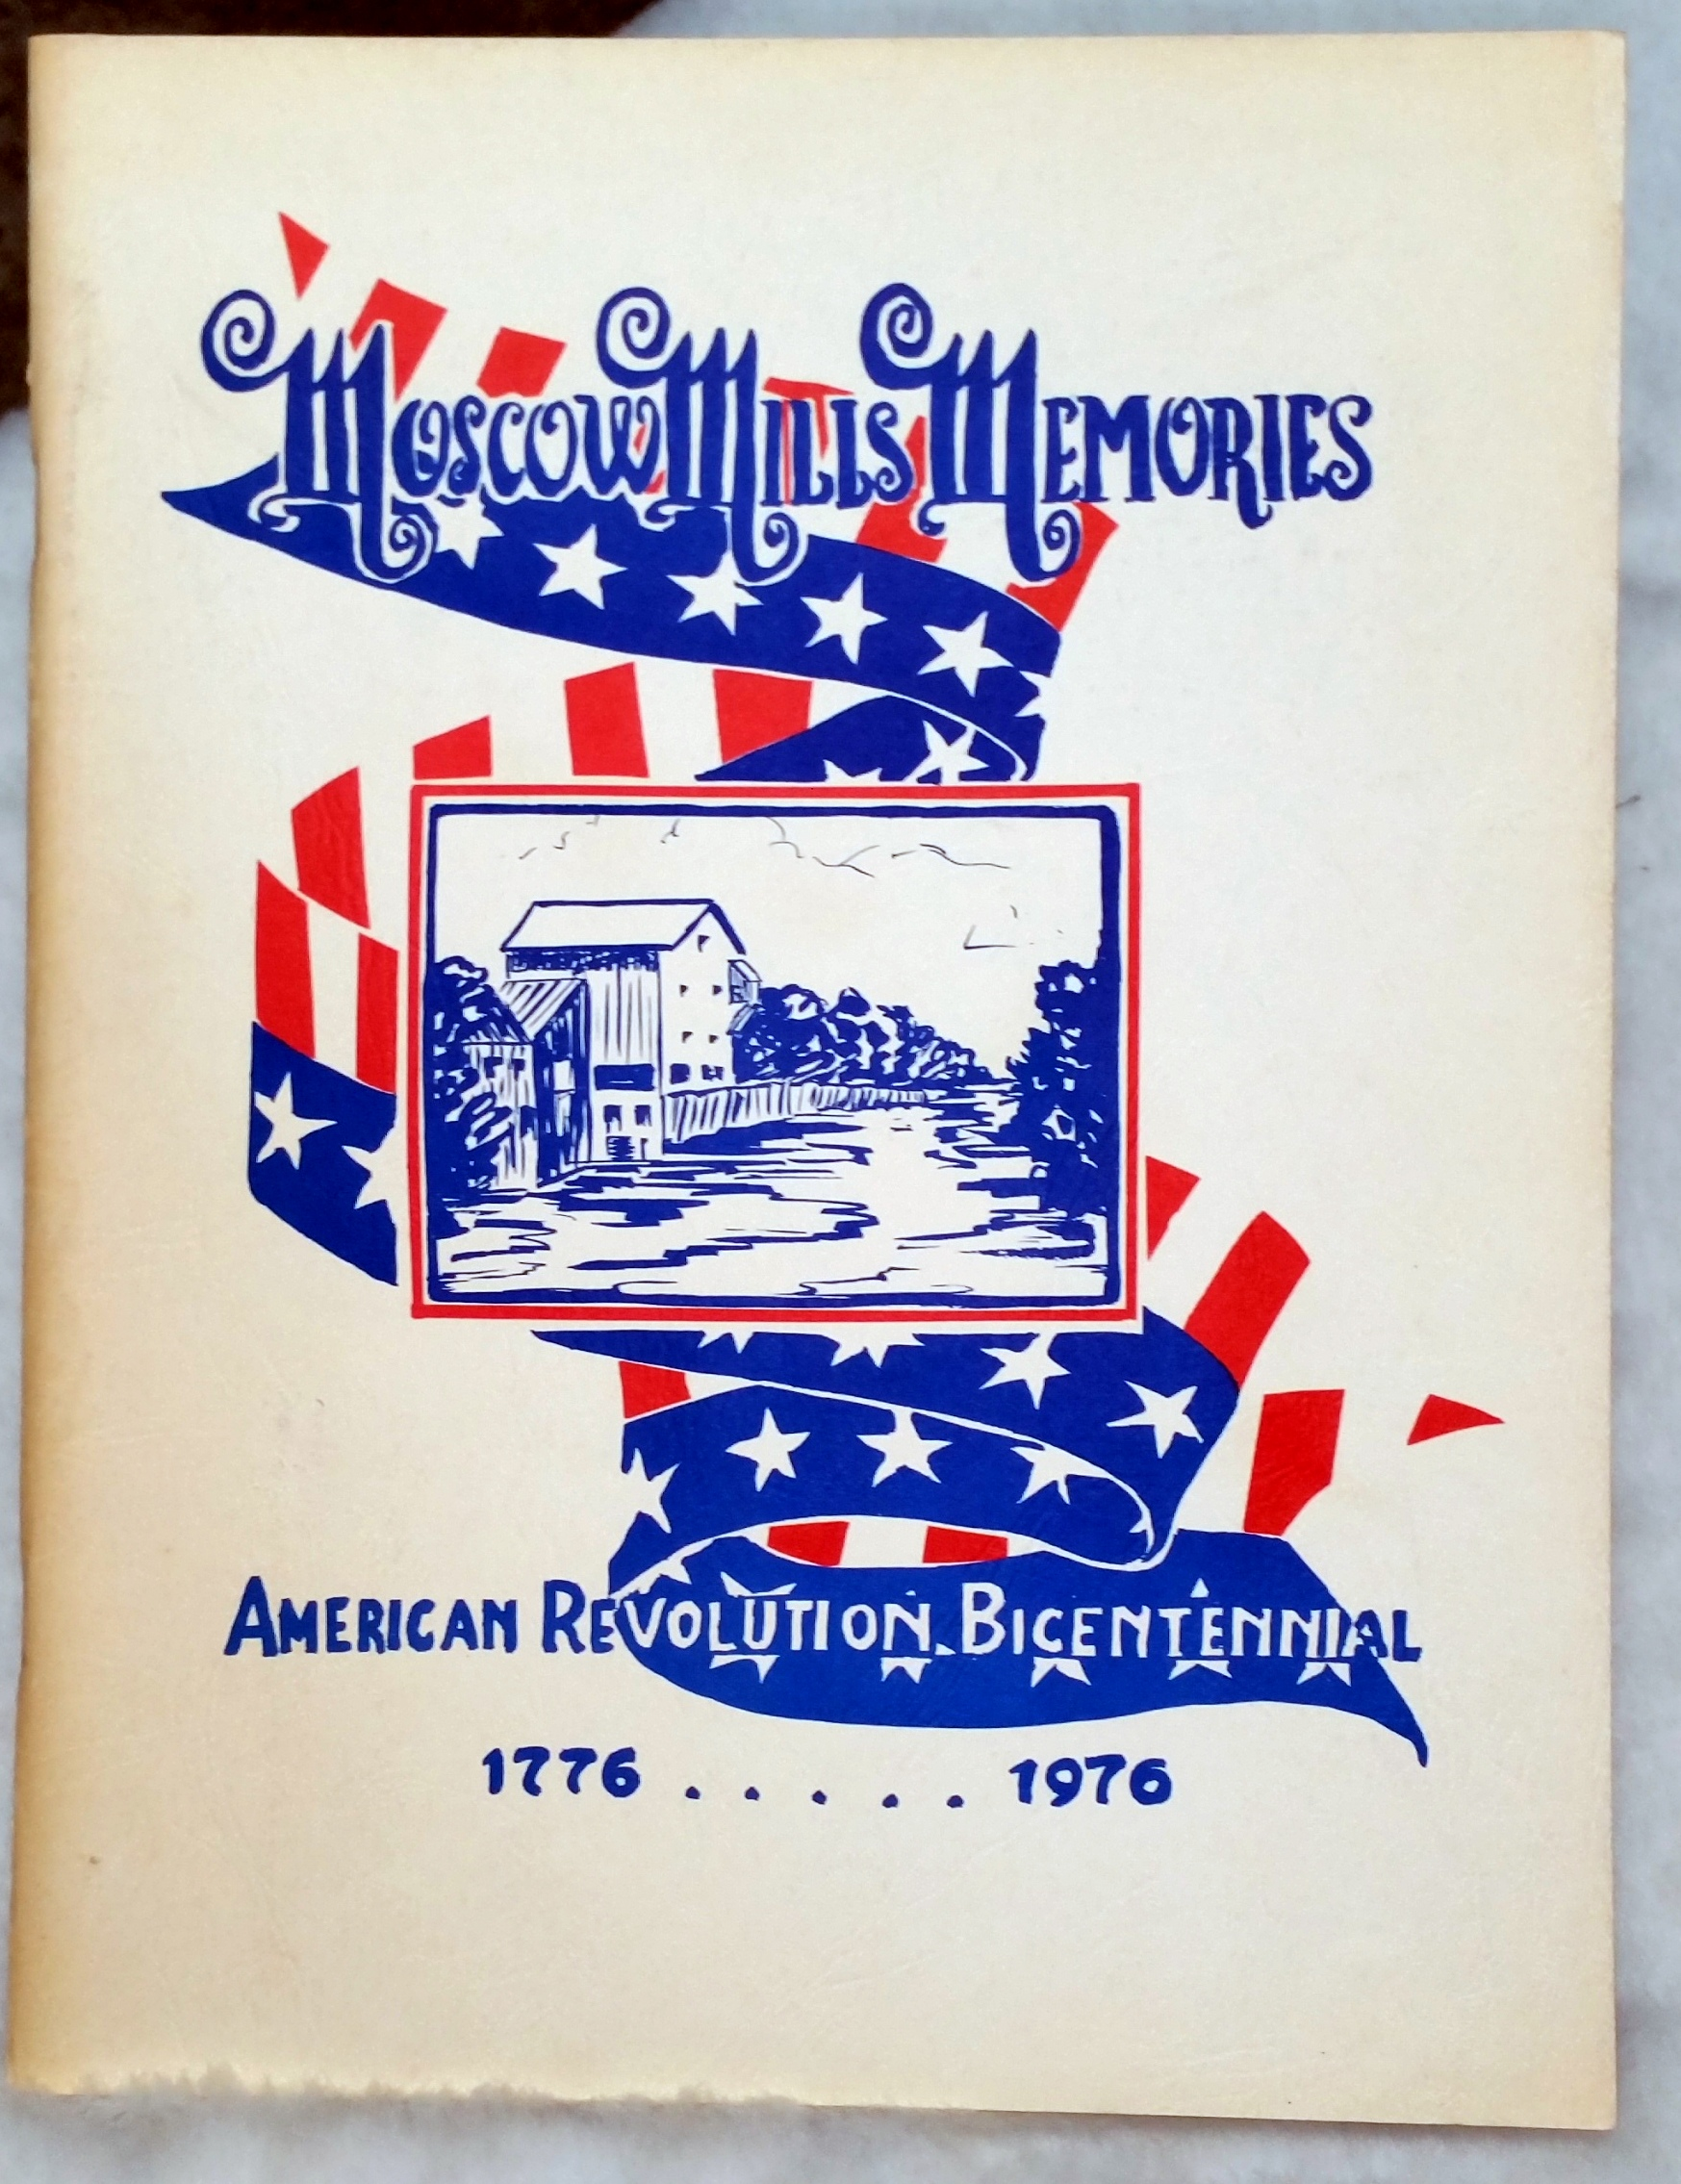 Image for Moscow Mills Memories, American Revolution Bicentennial 1776....1976